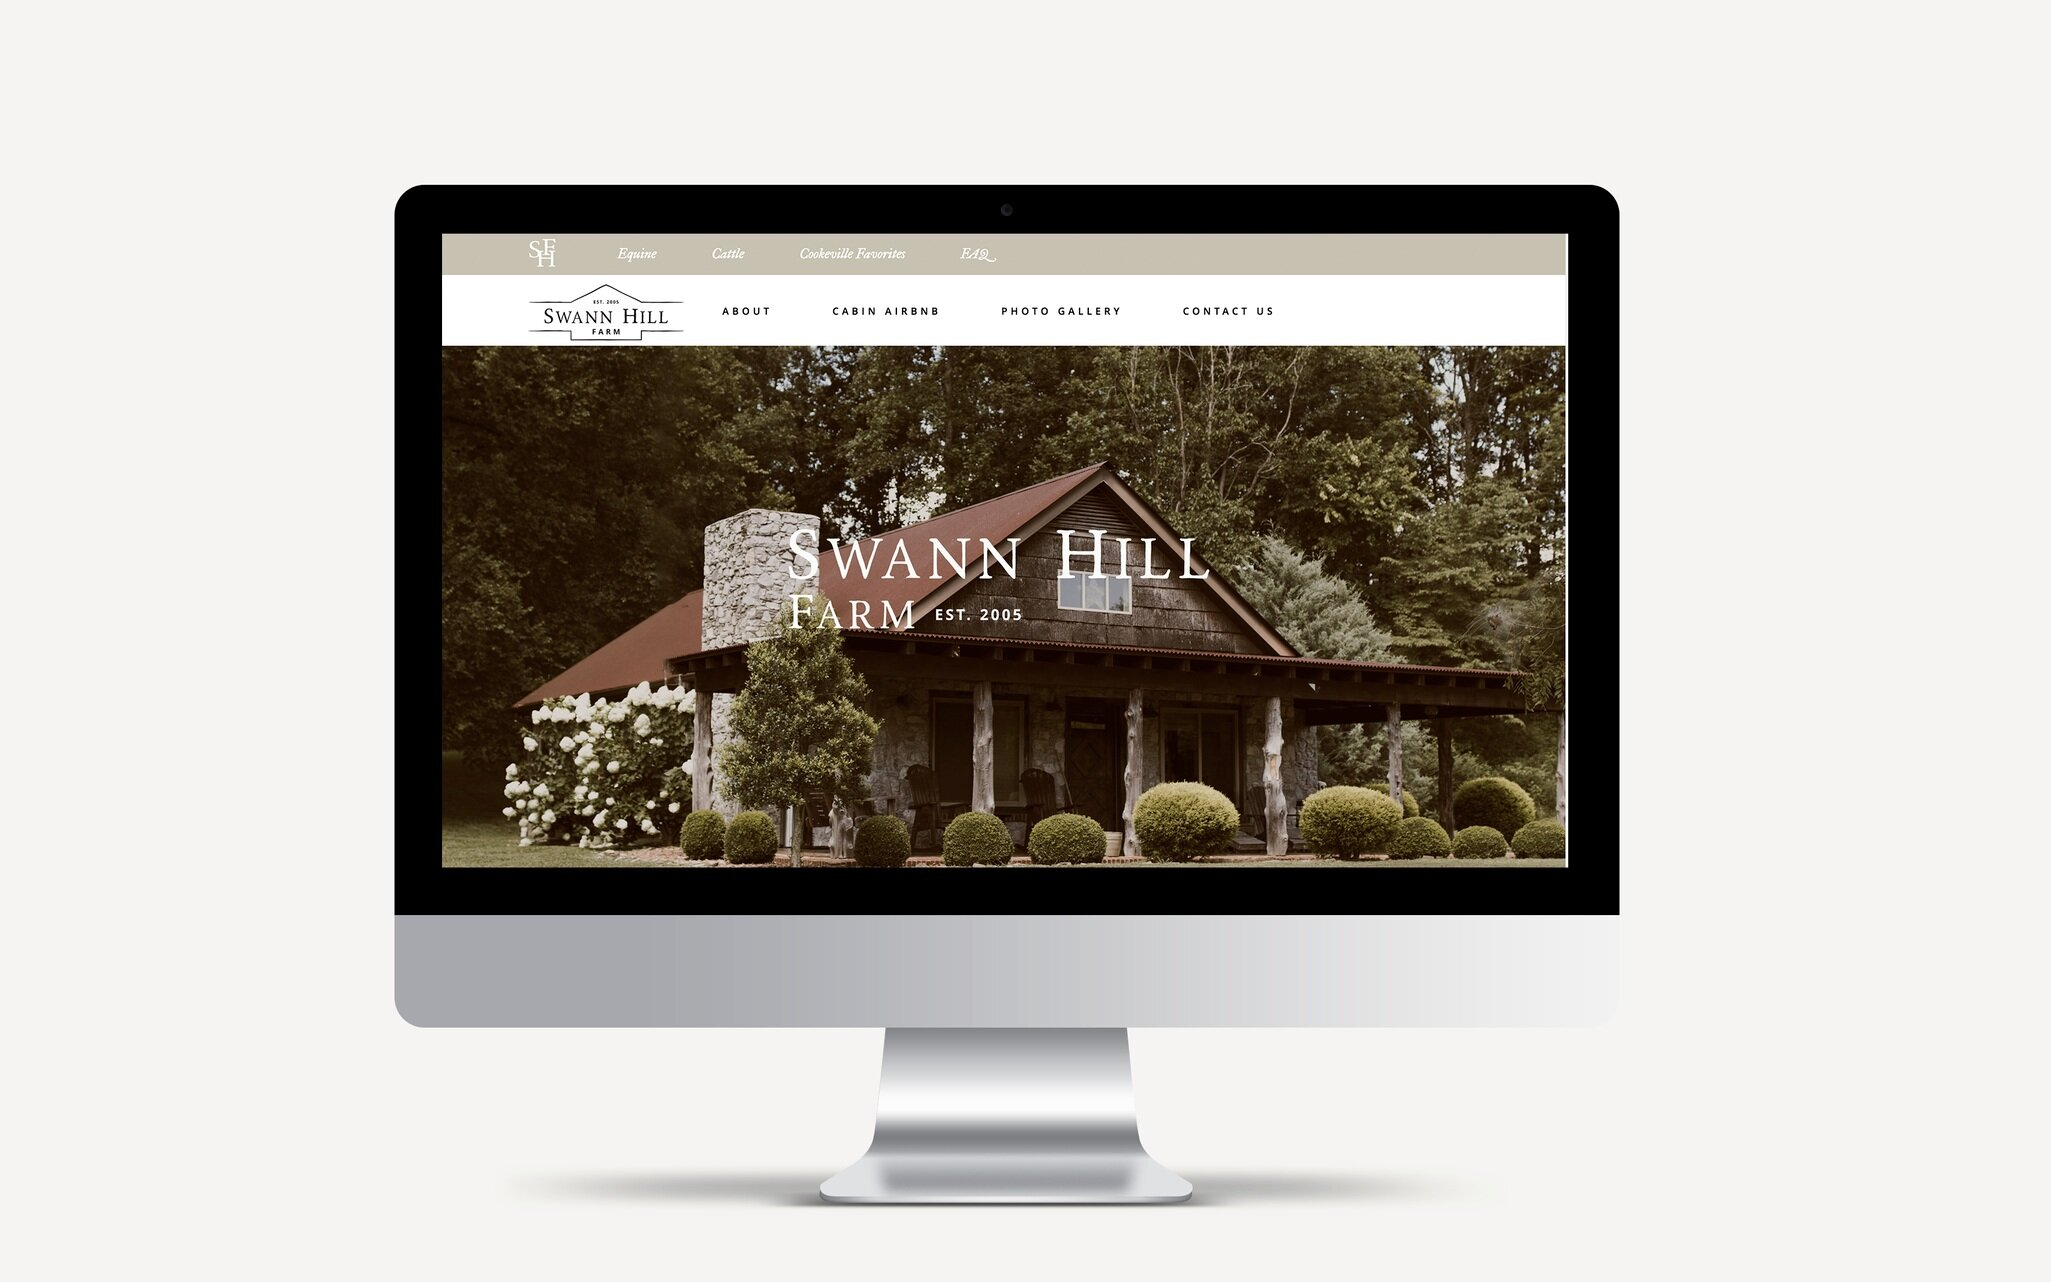 Swann Hill Farm Website